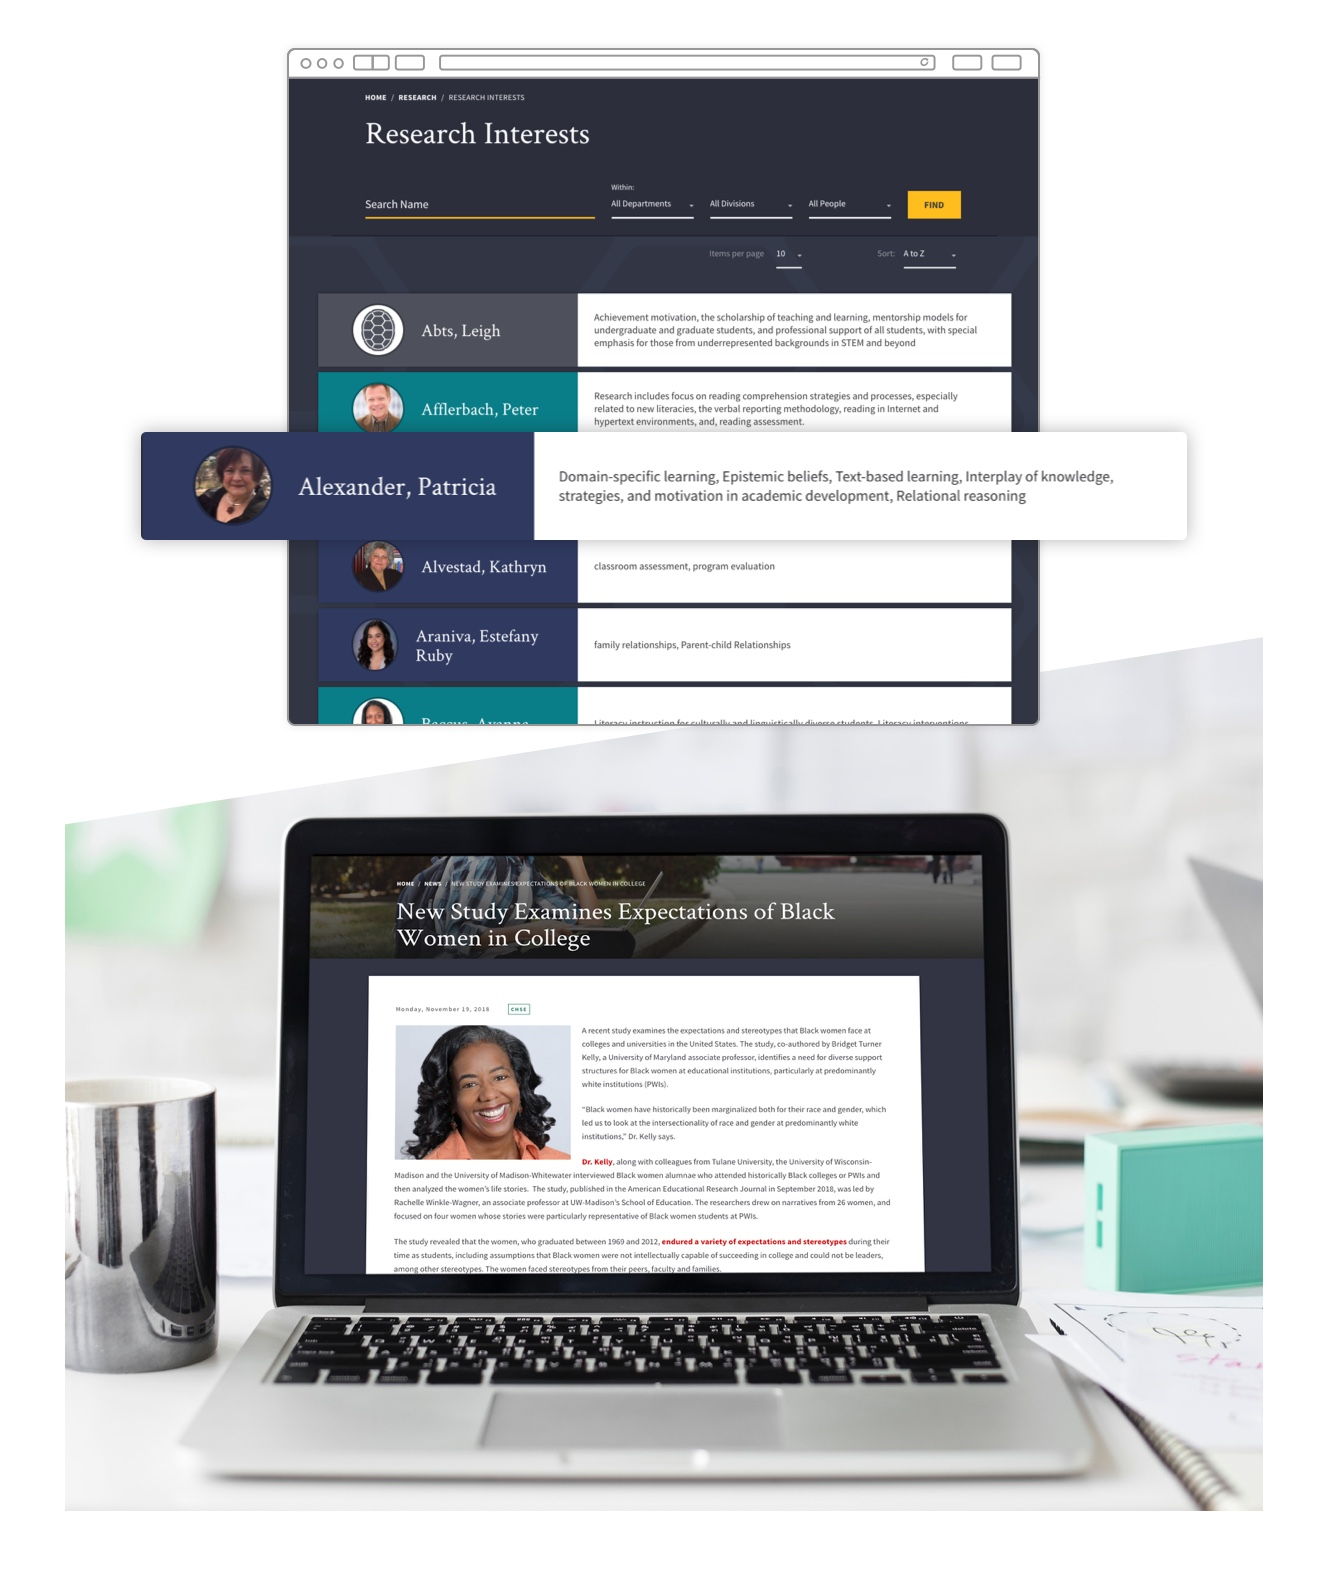 """Research interests page. Article feature titled """"New Study Expectations of Black Women in College"""" displayed on a laptop."""